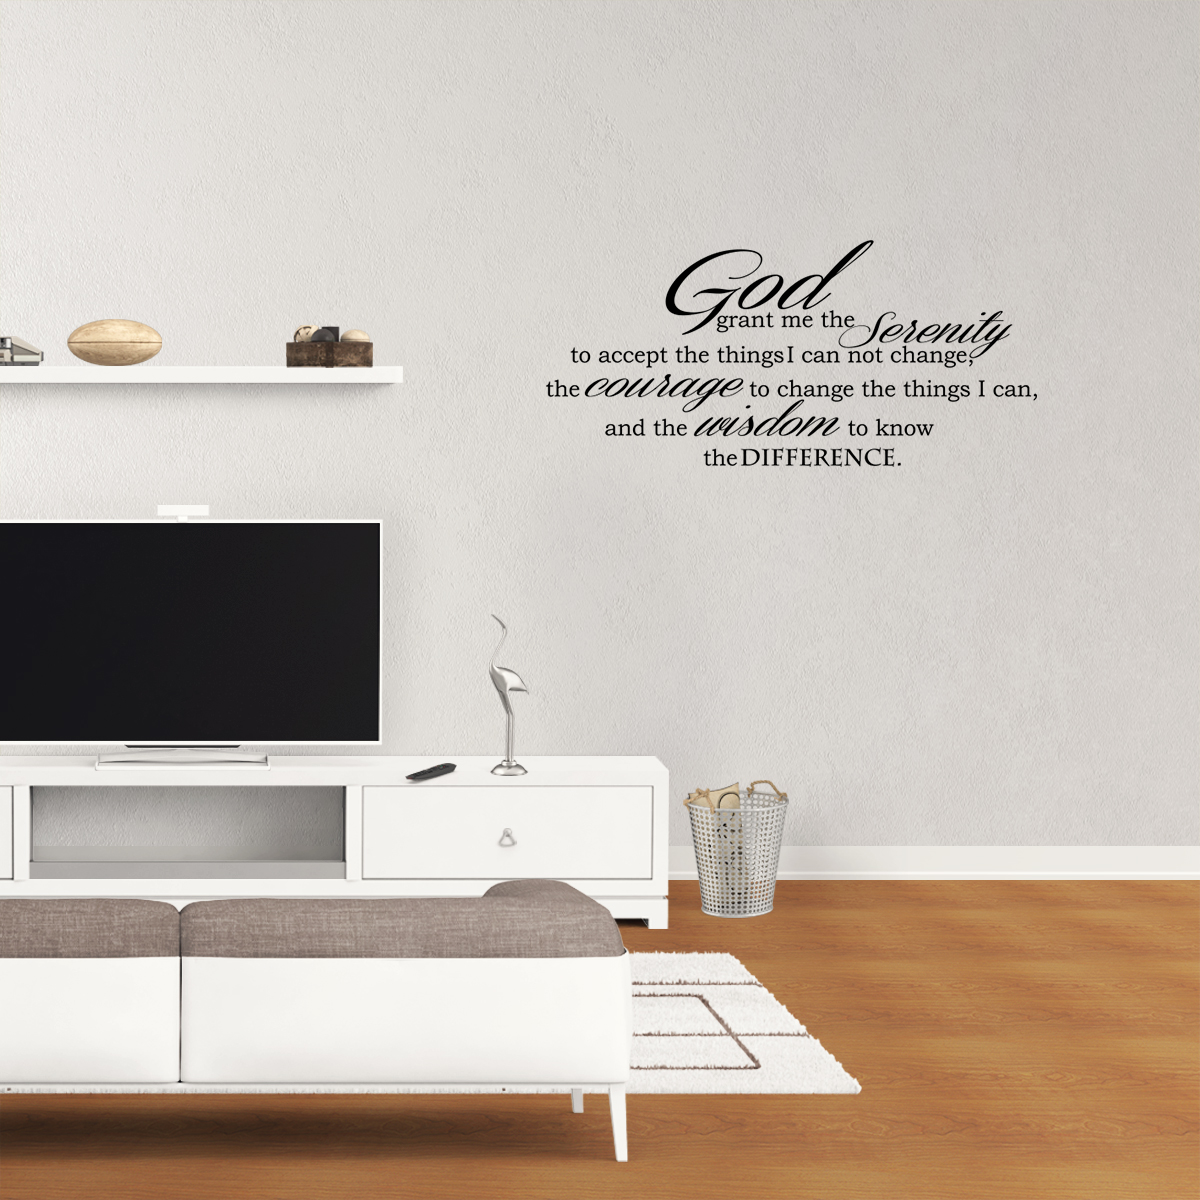 Delightful God Grant Serenity Prayer Vinyl Wall Decal Quotes Wall Stickers Religious Decals  Home Decor Decals JR34   Walmart.com